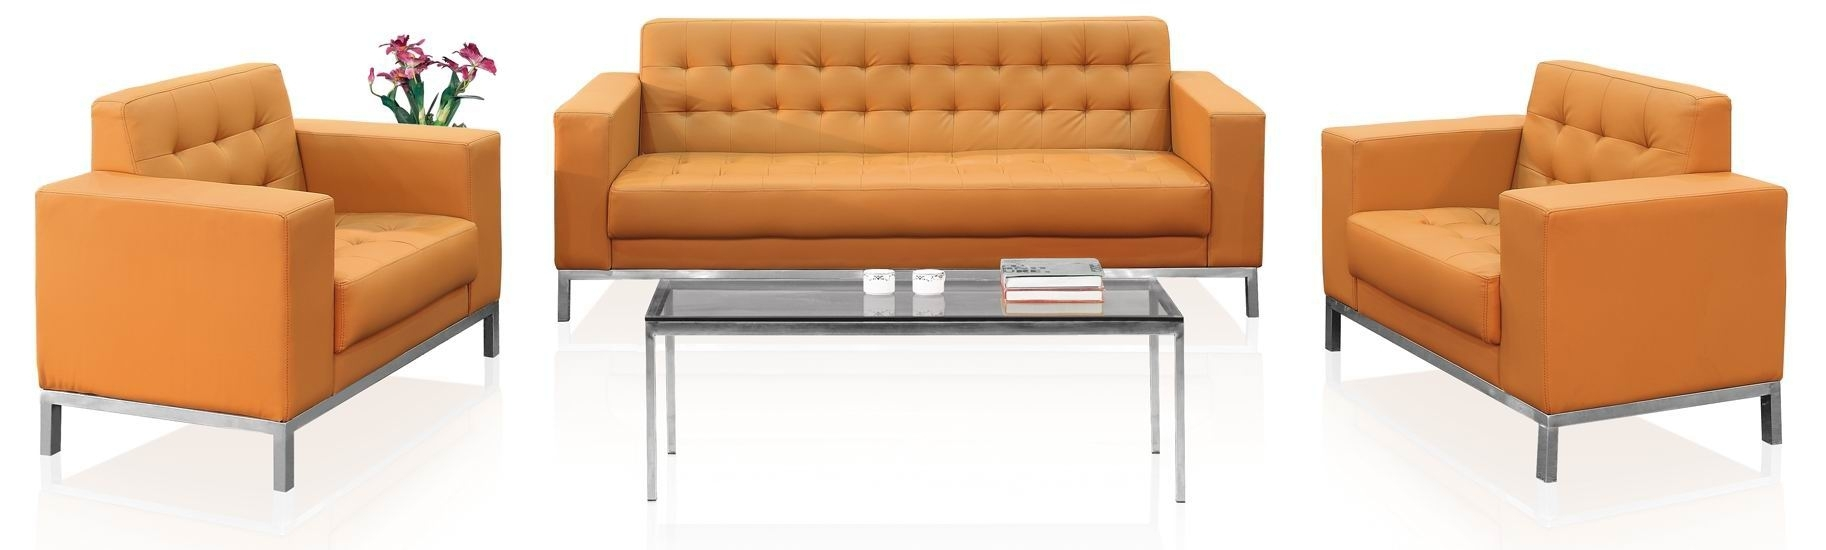 Beautiful Couch For Office 82 For Modern Sofa Inspiration With Couch with Office Sofas (Image 4 of 10)